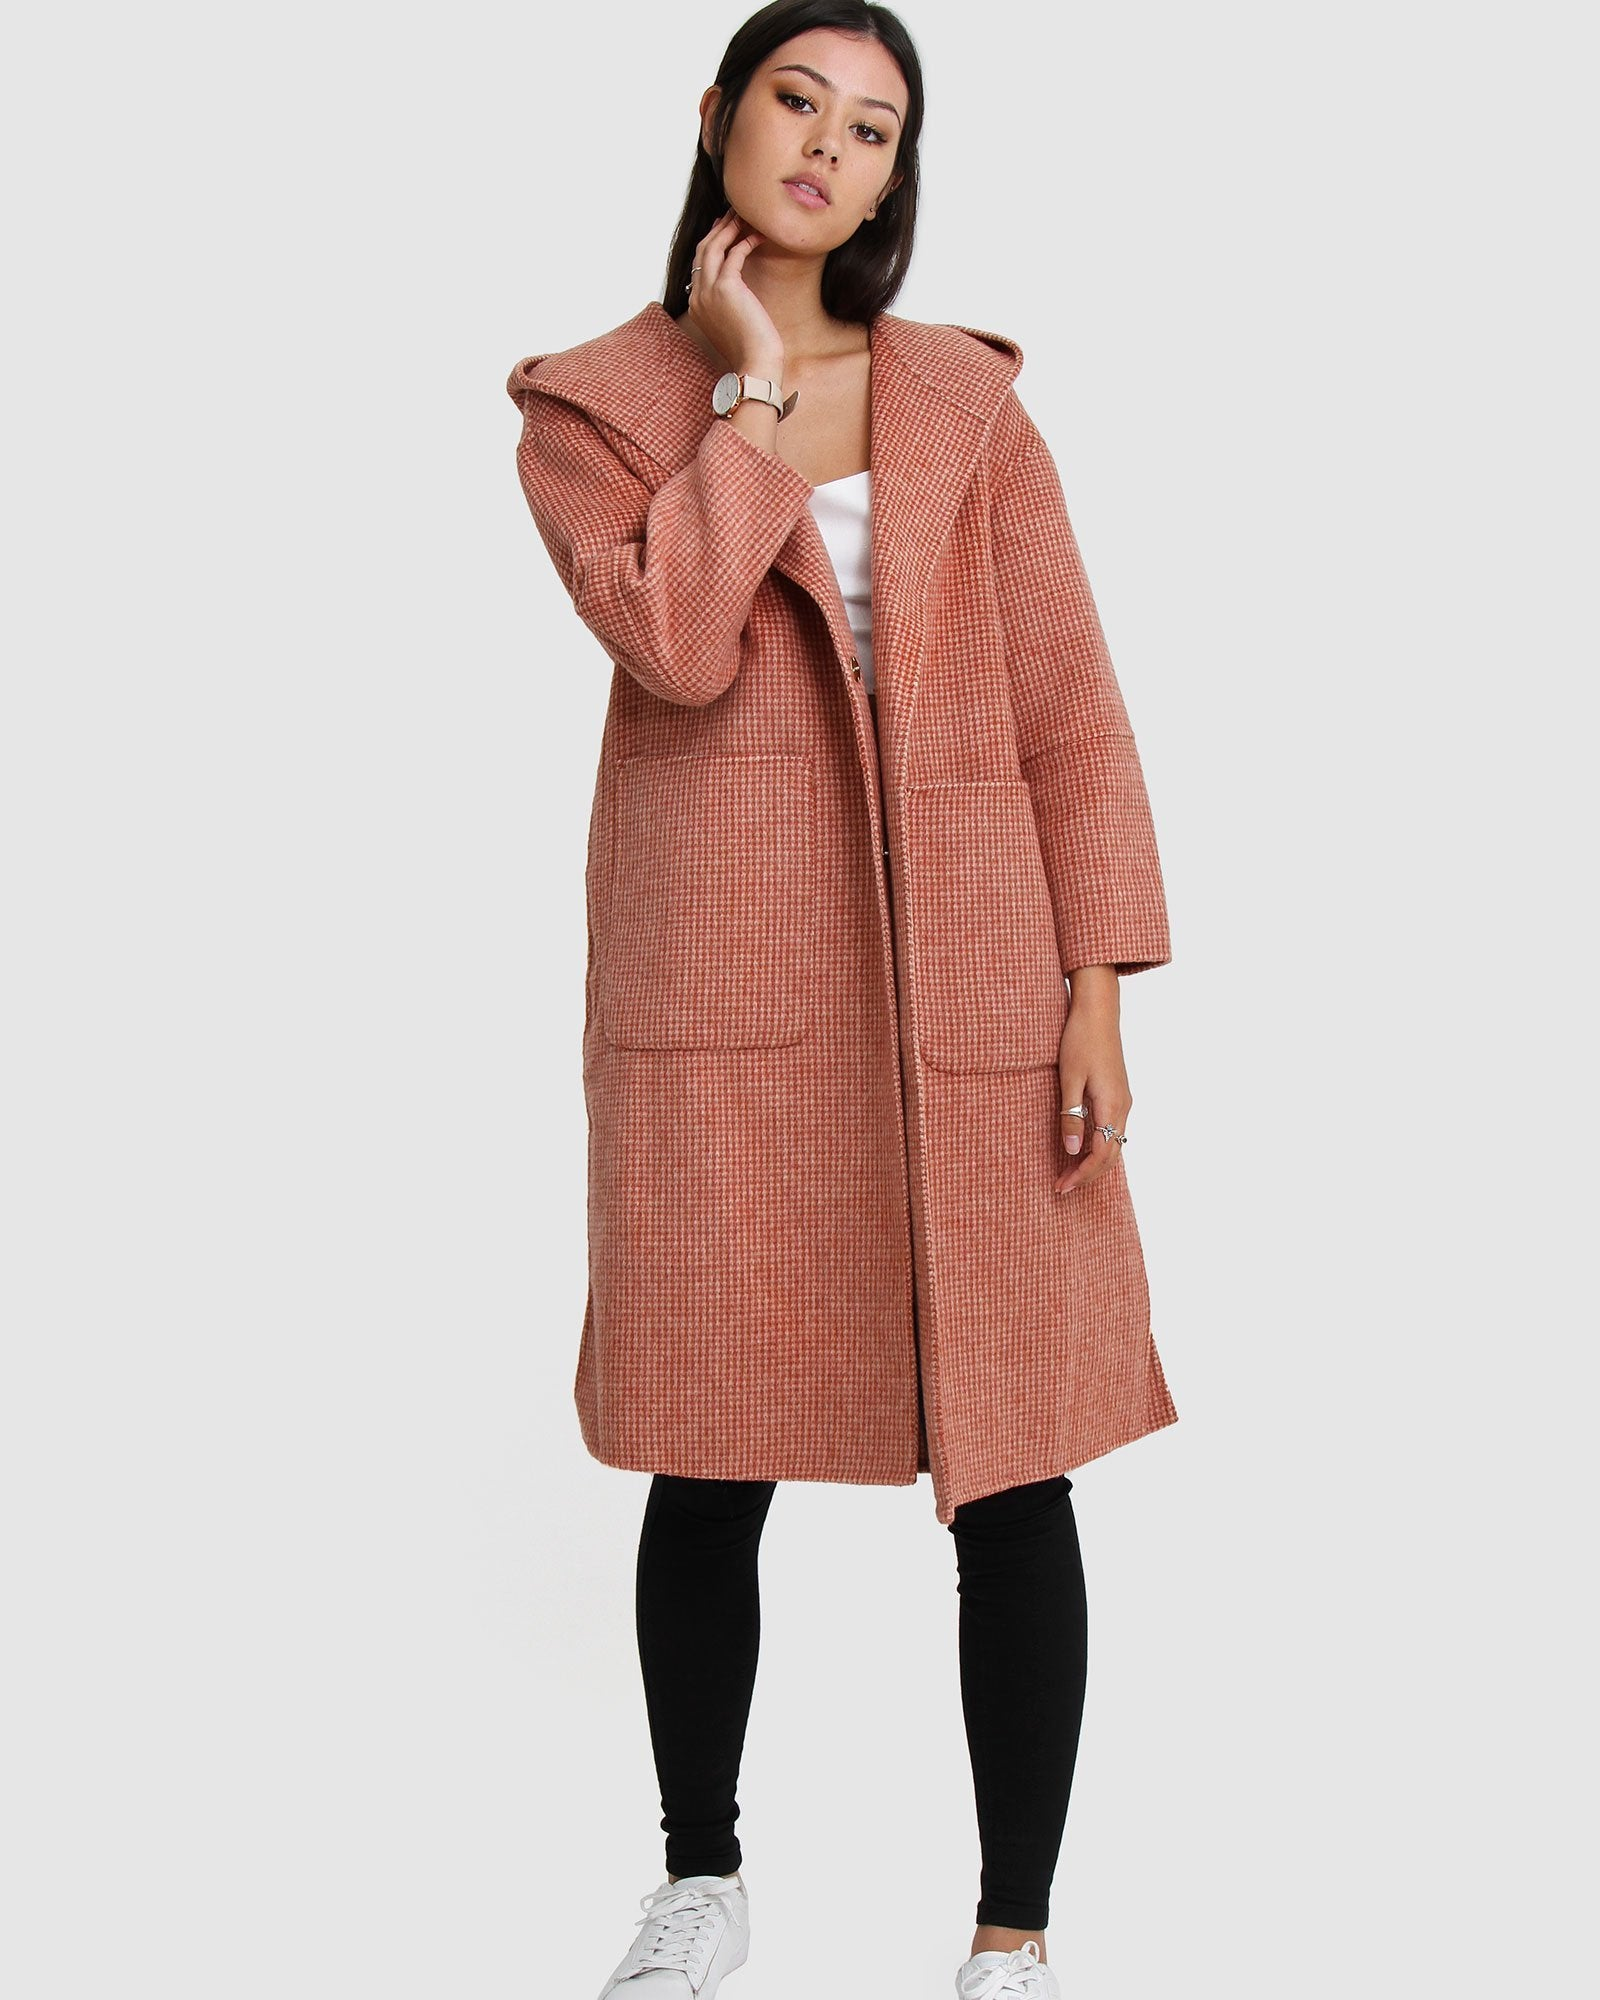 Walk This Way Wool Blend Oversized Coat - Watermelon